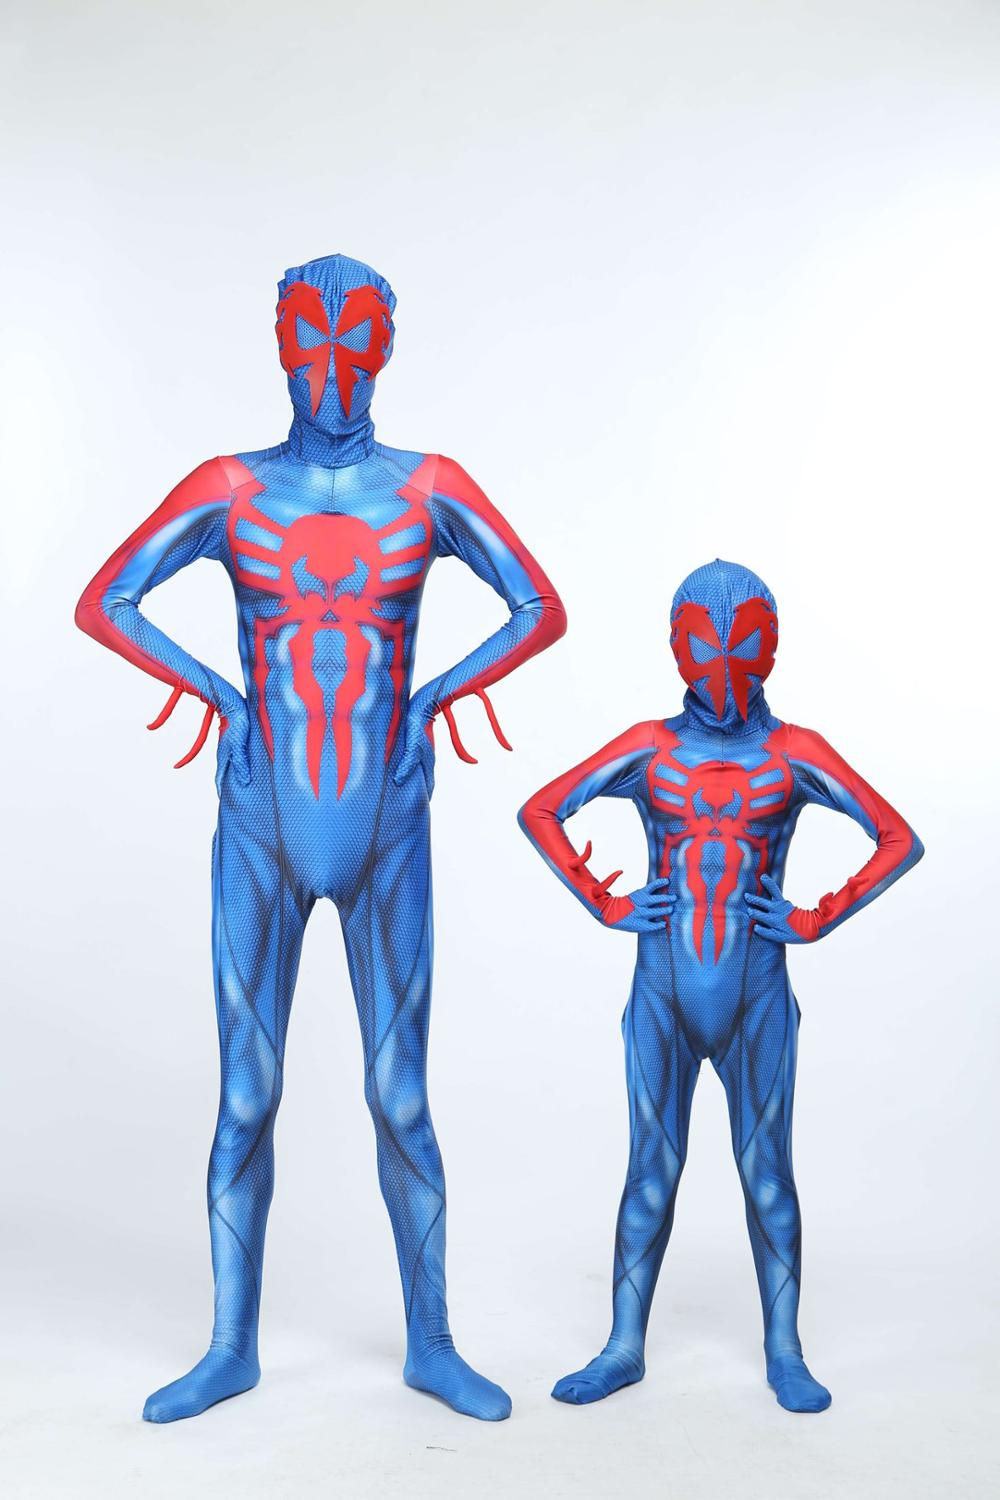 Spider-Man 2099 Miguel O'Hara Cosplay Super Hero Spiderman Costumes Fullbody Zentai Suit Adult Kids Jumpsuit Long Sleeve Rompers